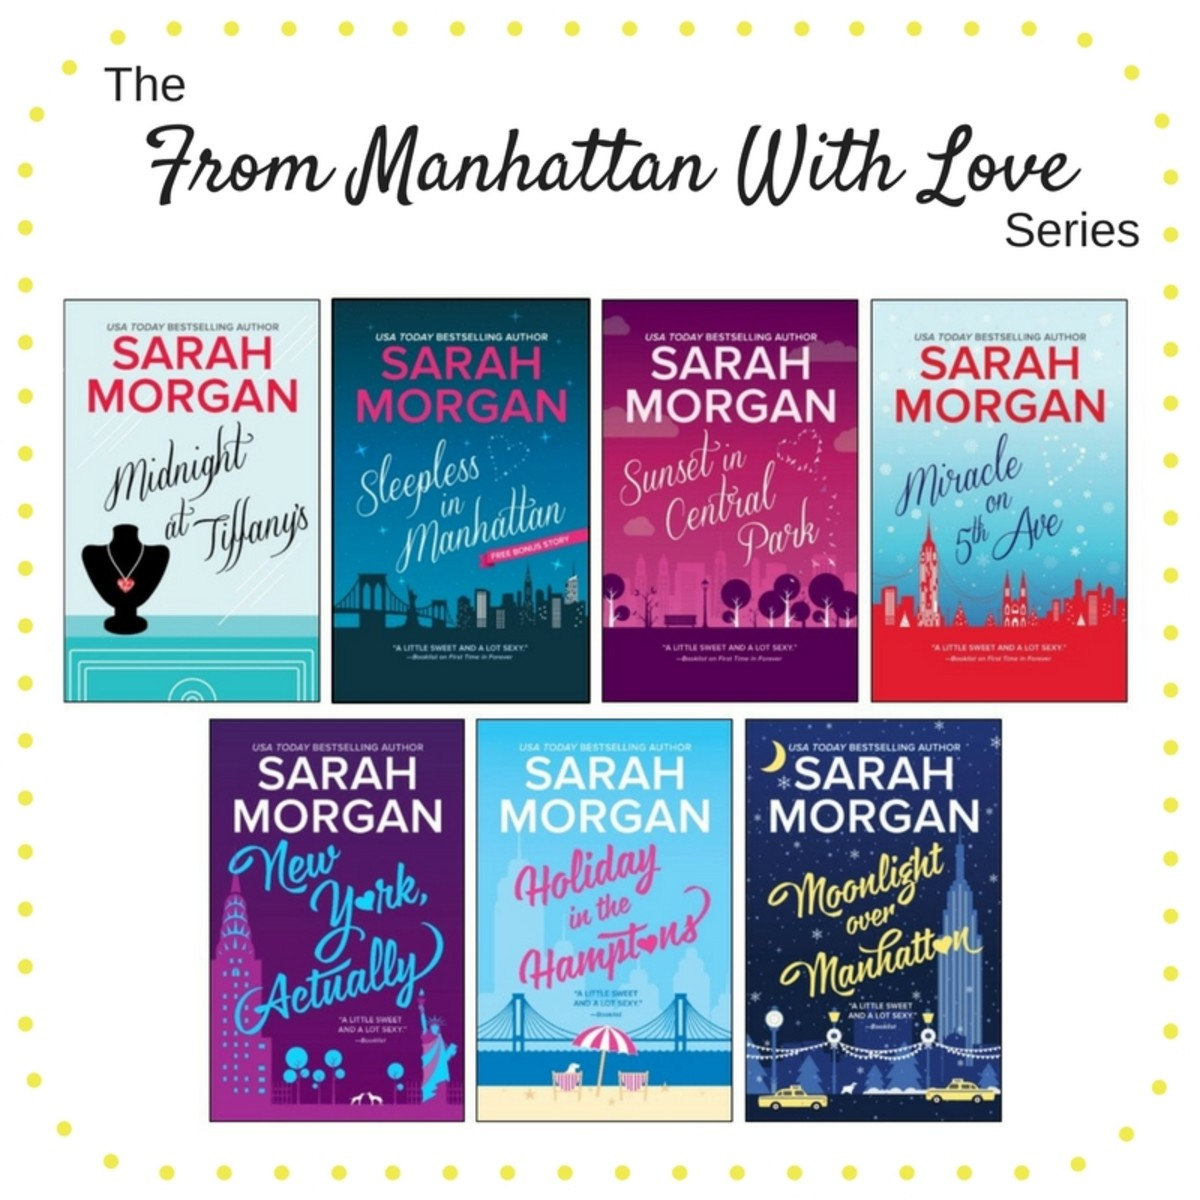 We recently chatted with USA Today Bestselling Author Sarah Morgan about her new release, Moonlight Over Manhattan, available now wherever books are sold.